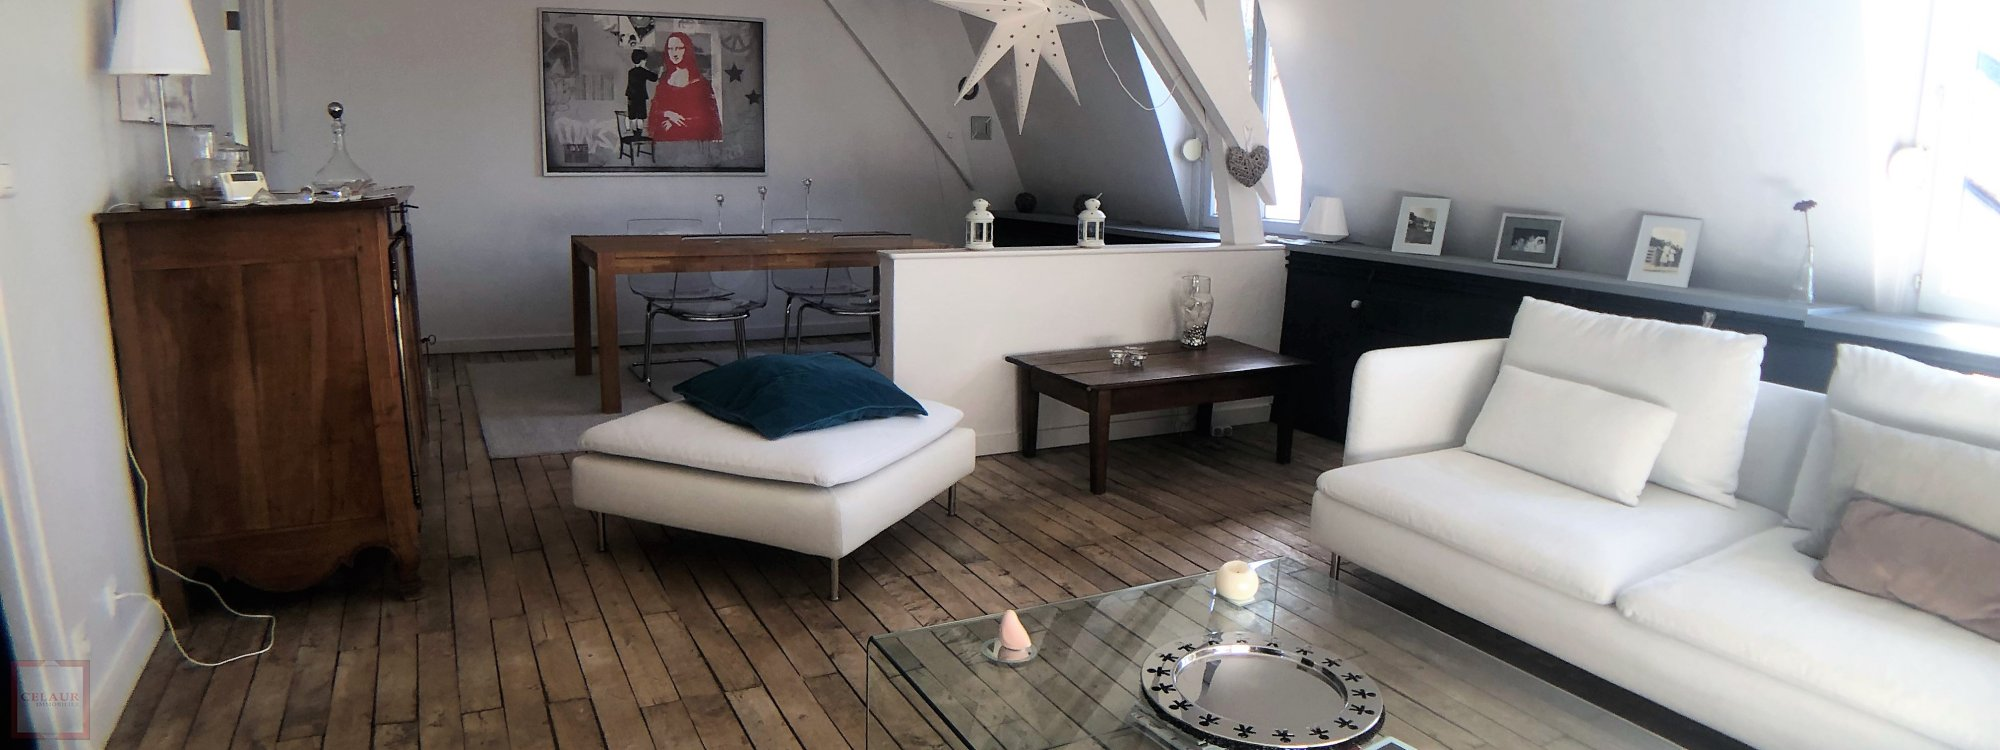 SUBLIME APPARTEMENT AU COEUR DE LA VILLE - T3451vj